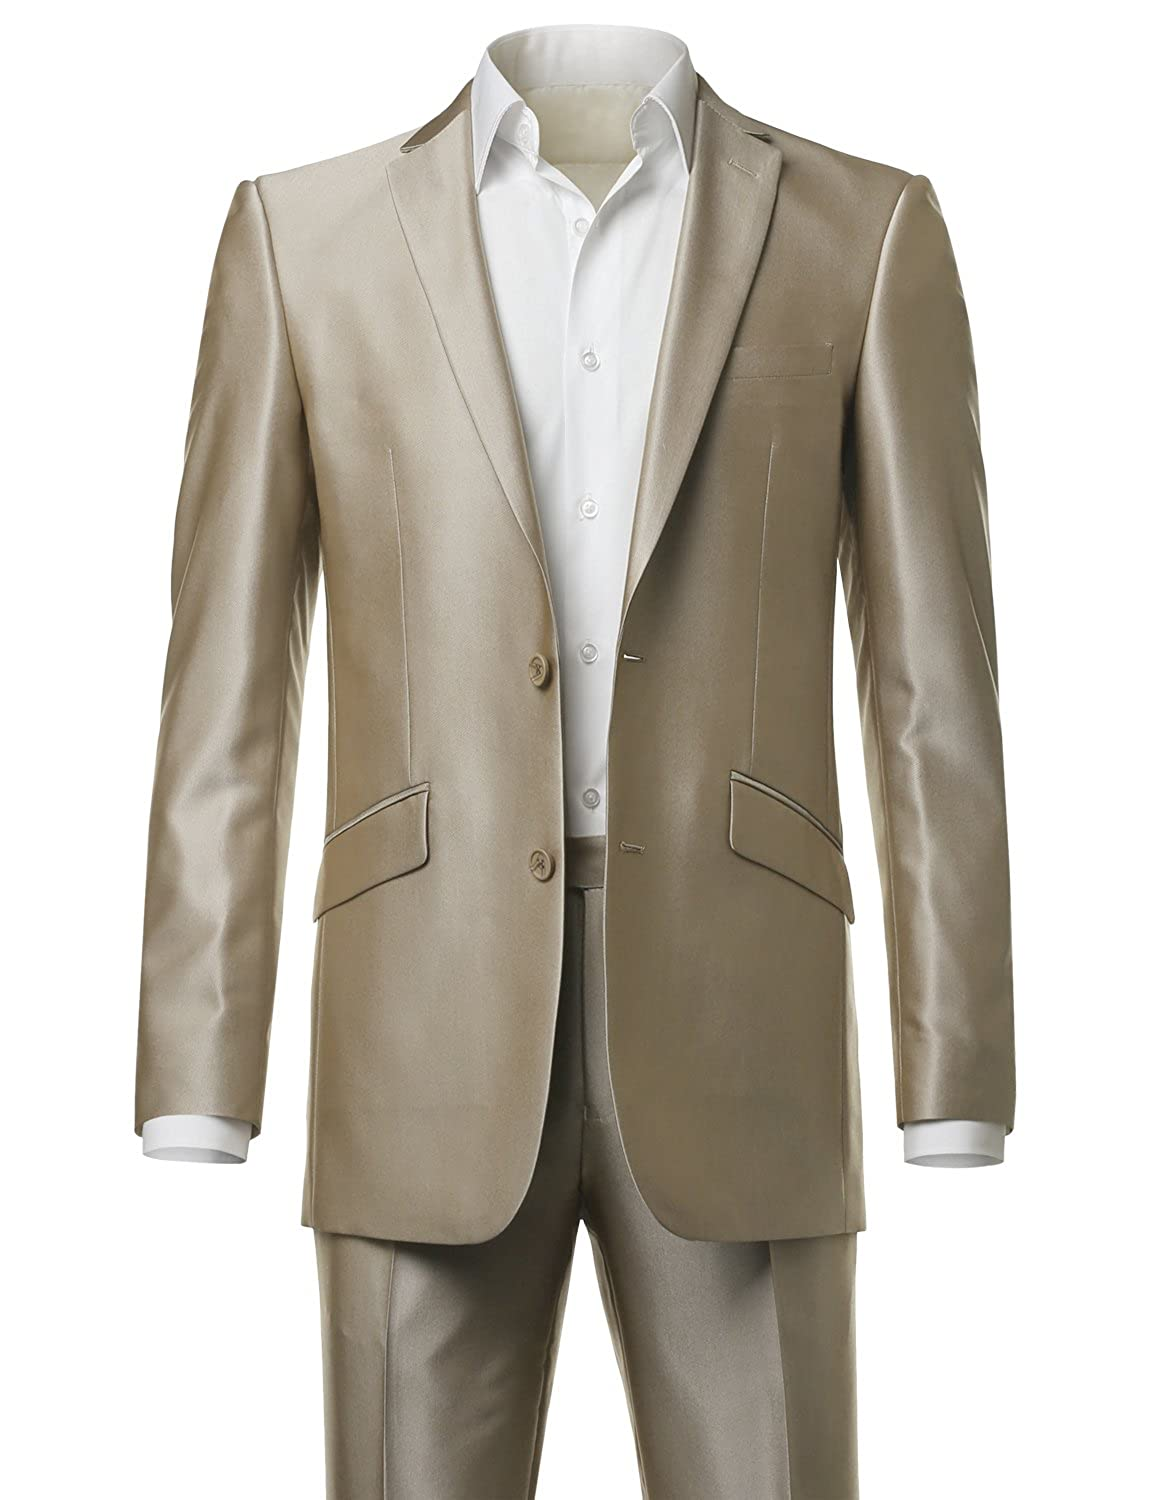 MONDAYSUIT Mens Shiny Two-Piece Slim-Fit 2-Button Blazer Jacket & Trouser Set